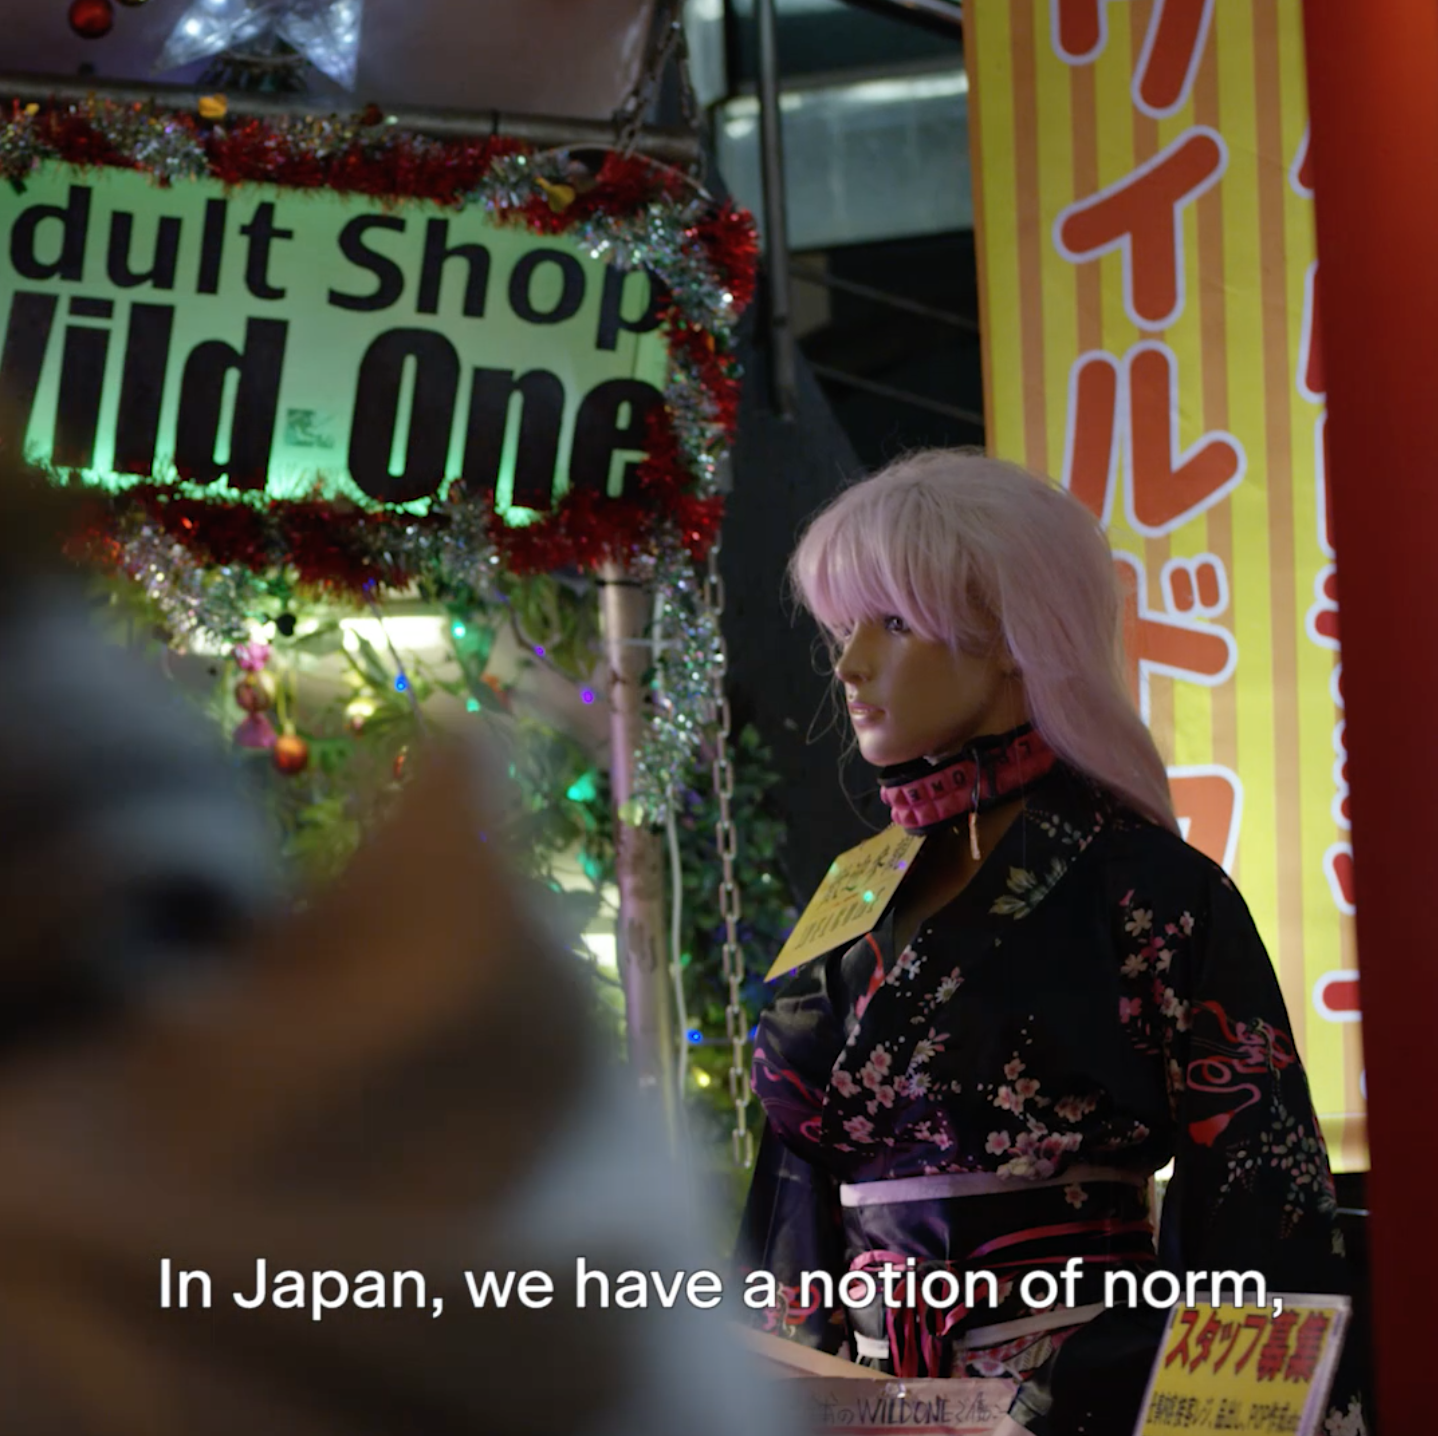 YOUNG BLOODS EPISODE 01: TOKYO - Across Tokyo, young women are tearing down social and cultural boundaries to make space for the new.